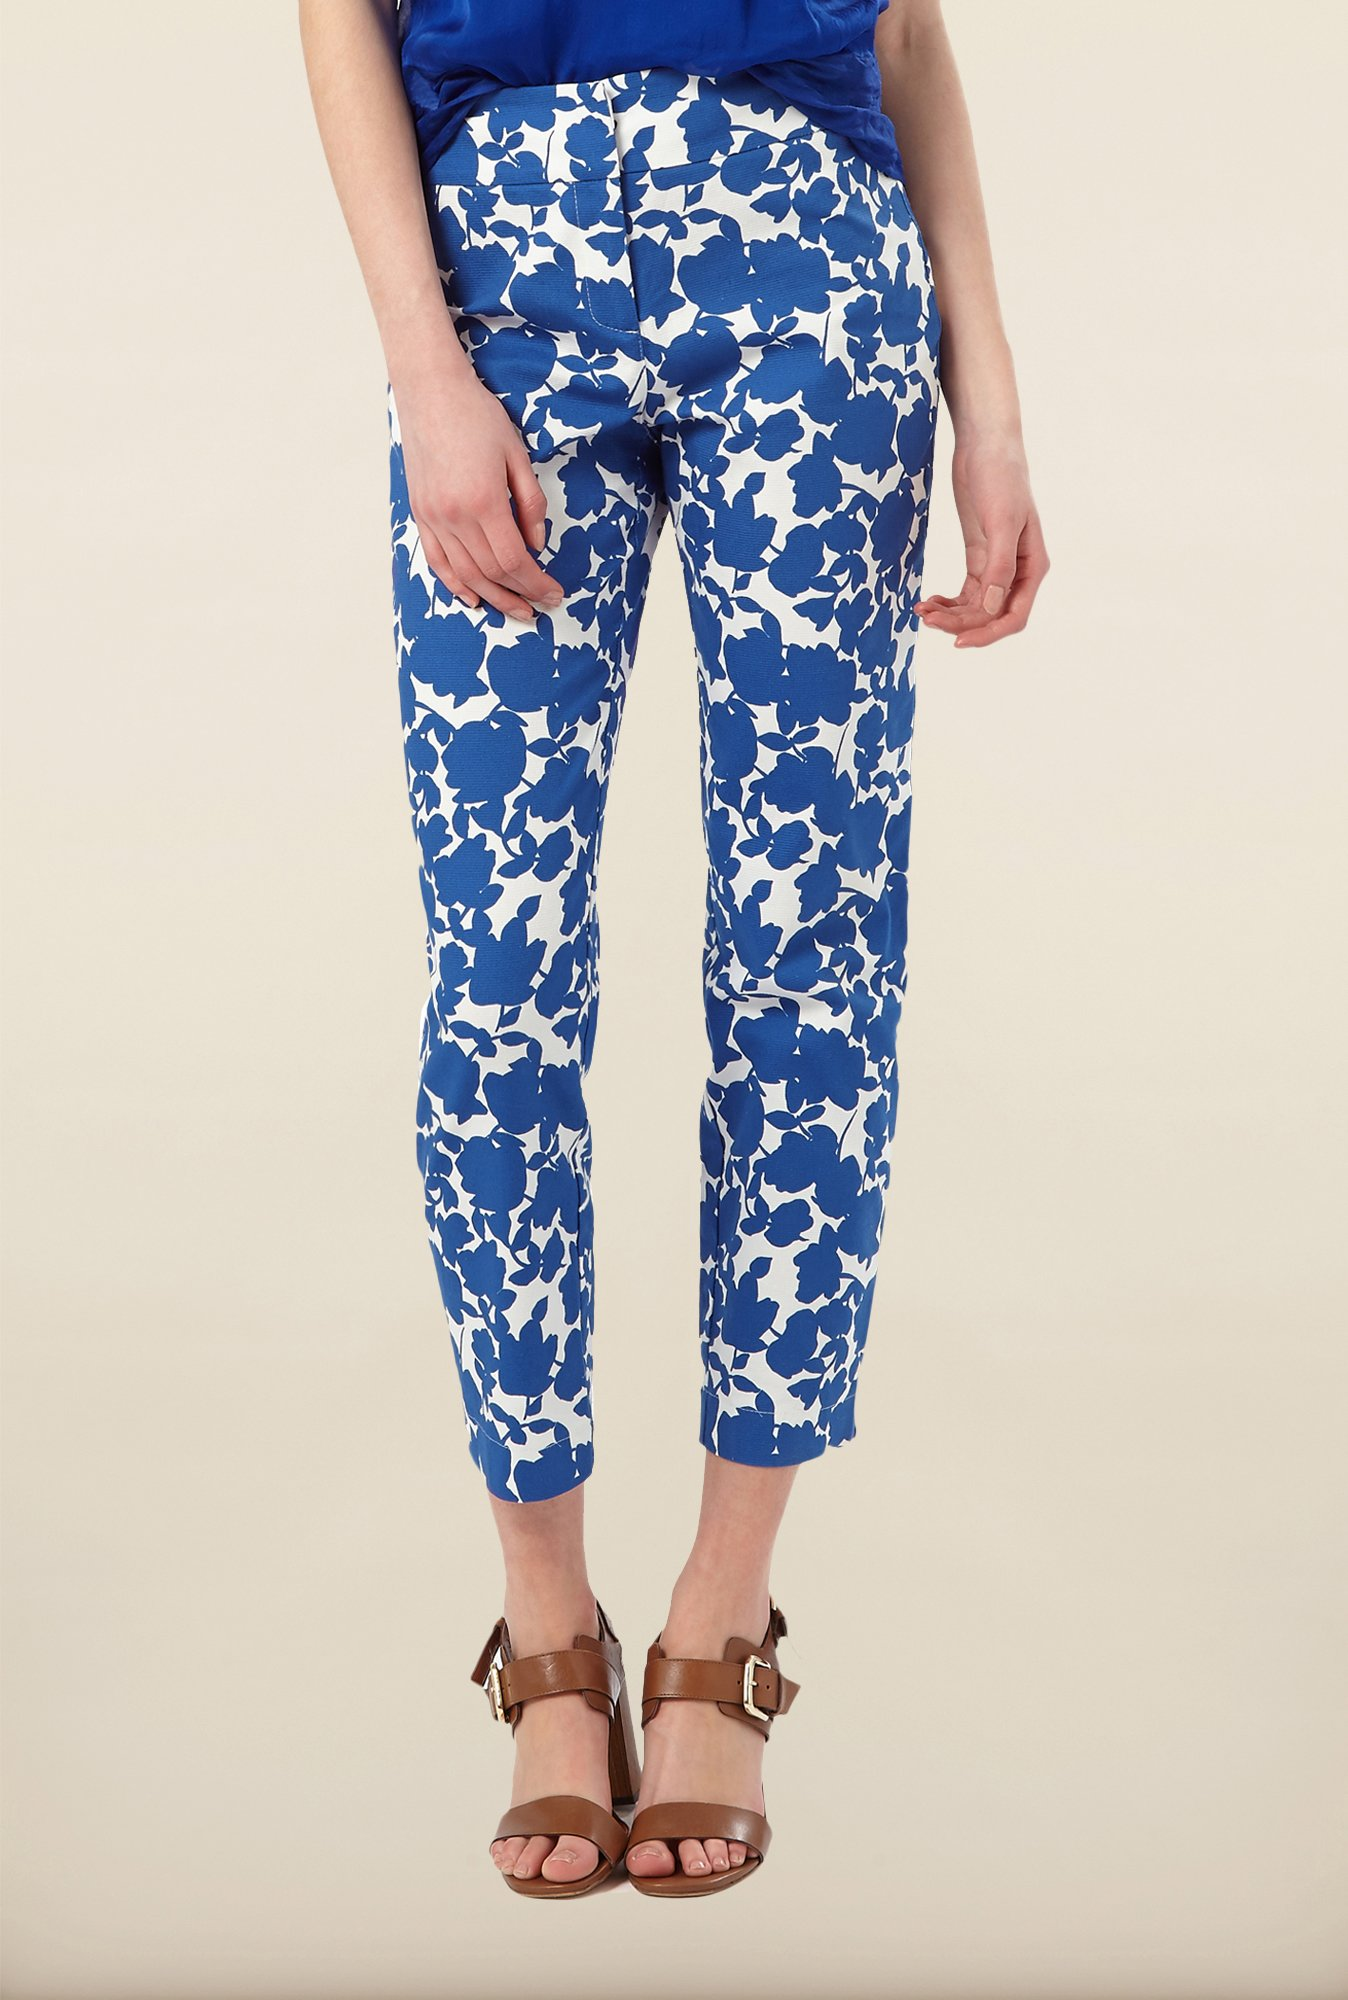 Phase Eight Blue Floral Printed Trousers